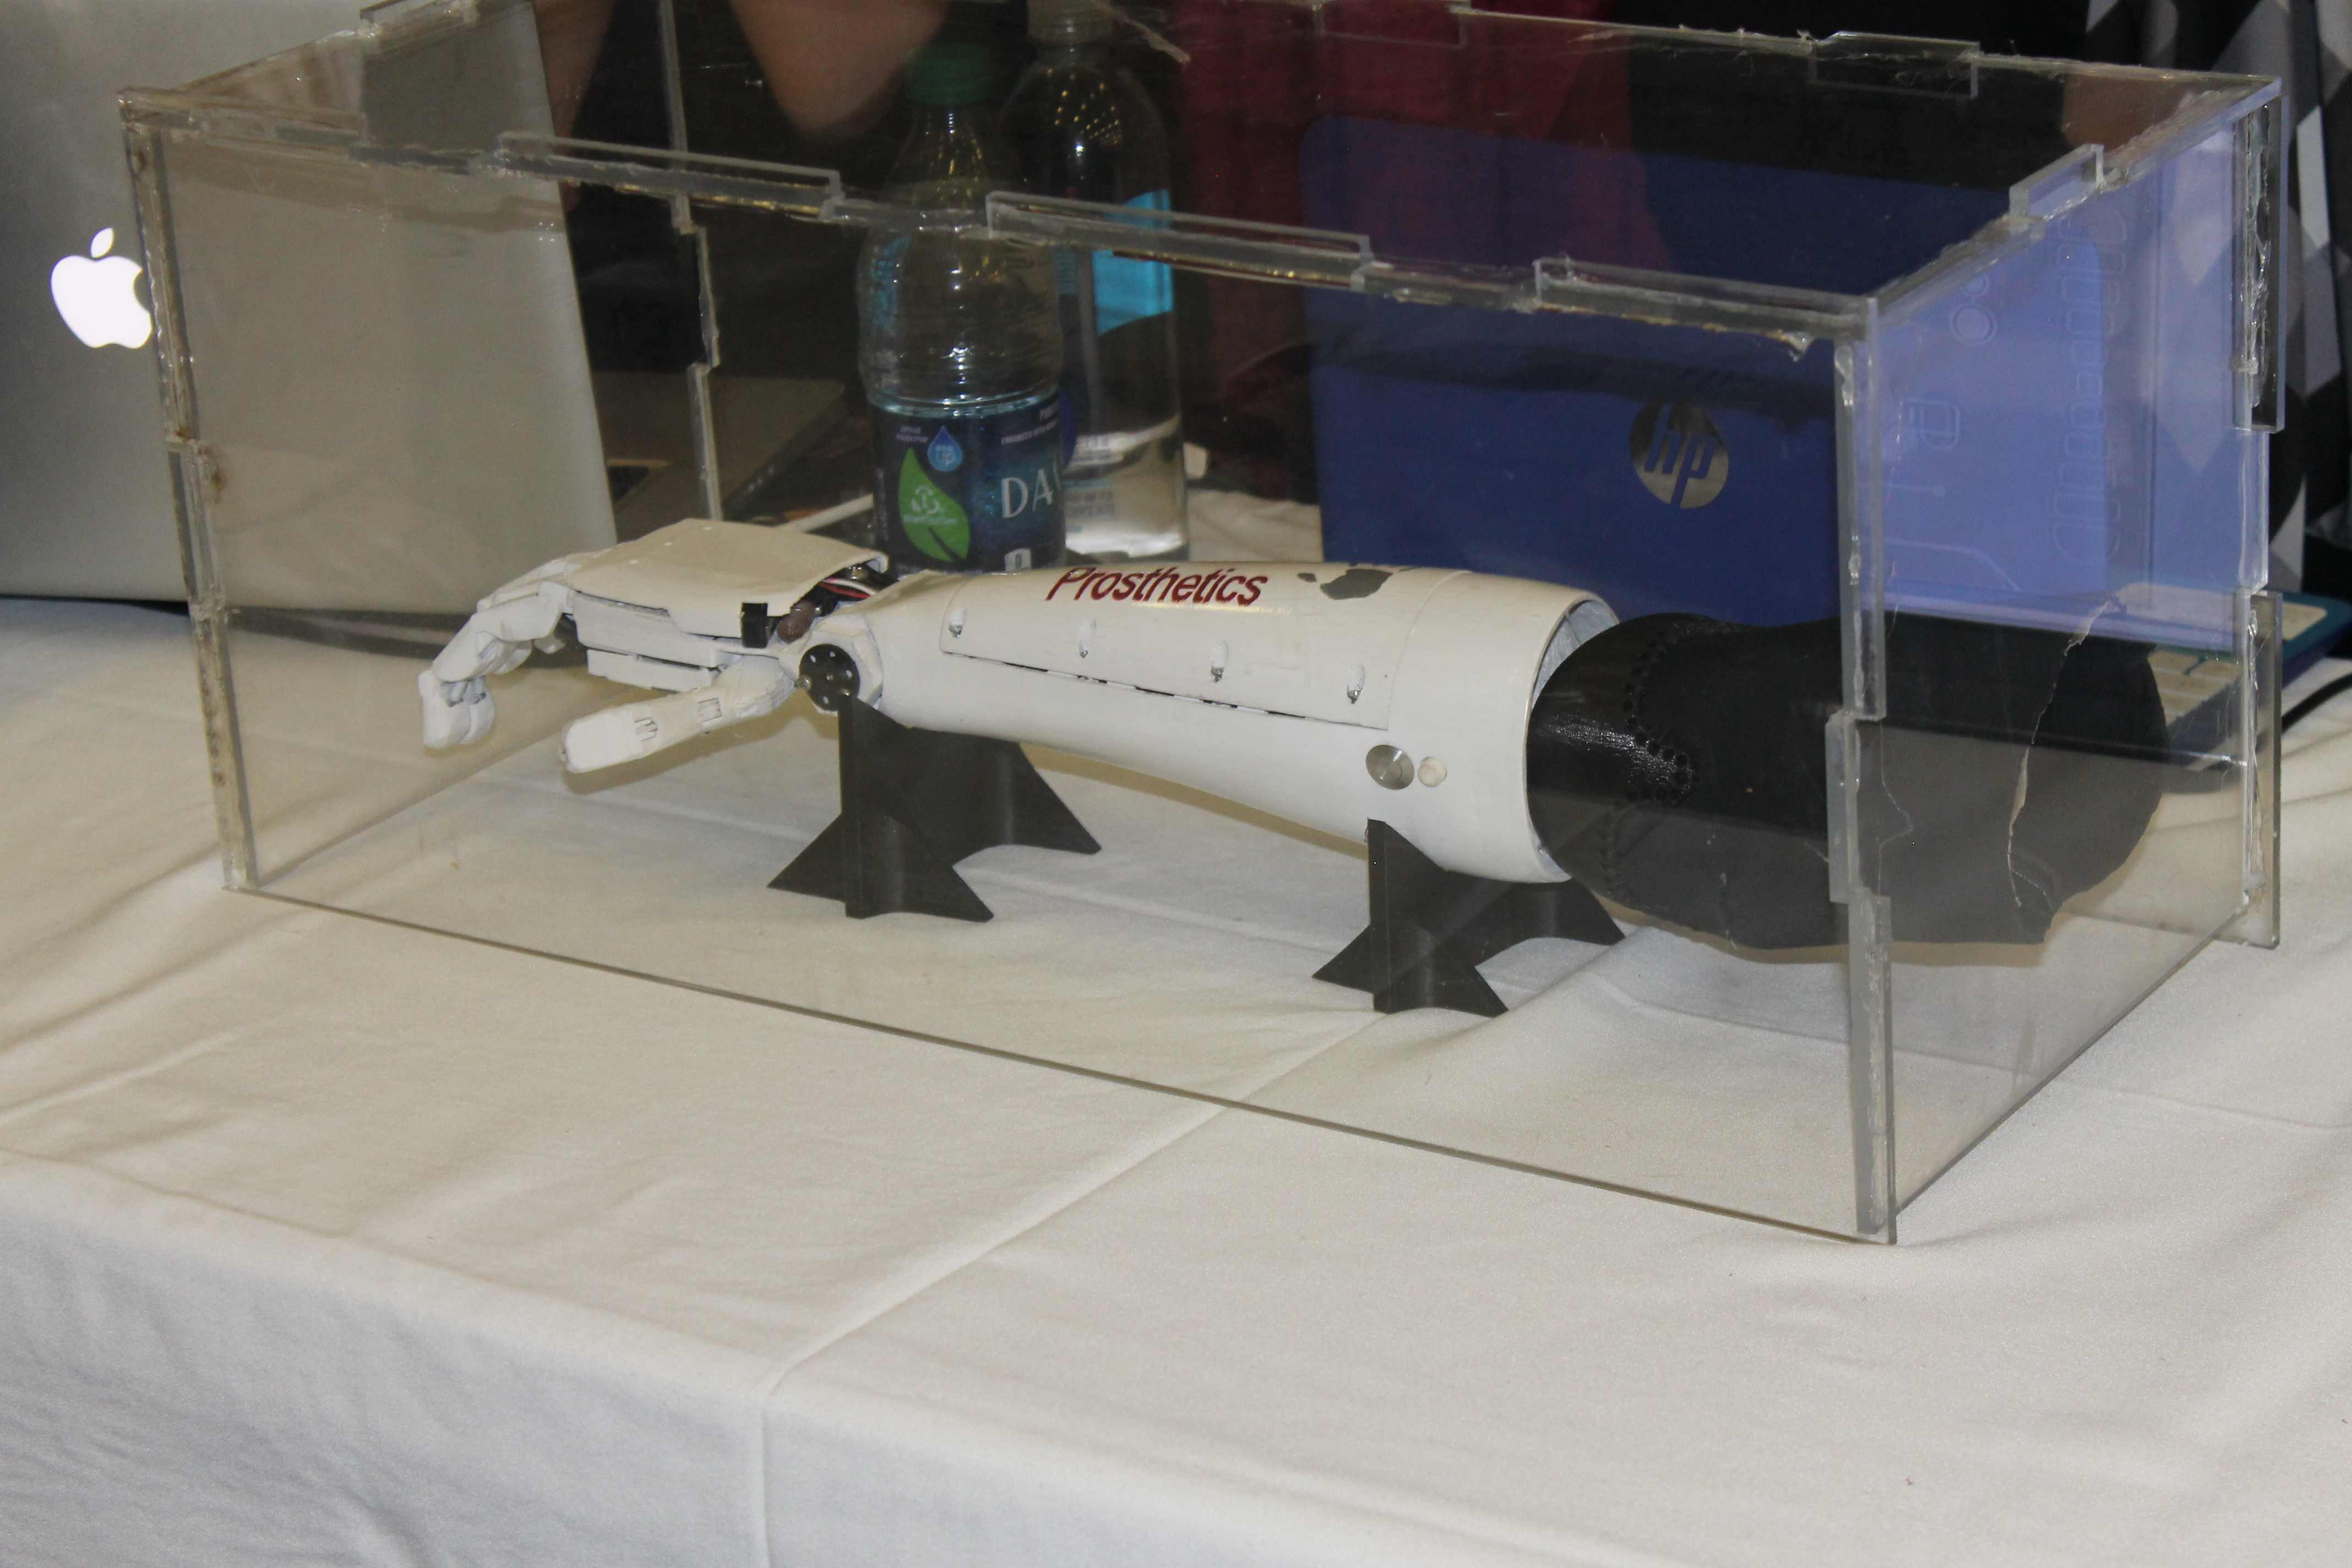 3D Printed Prosthetic Arm